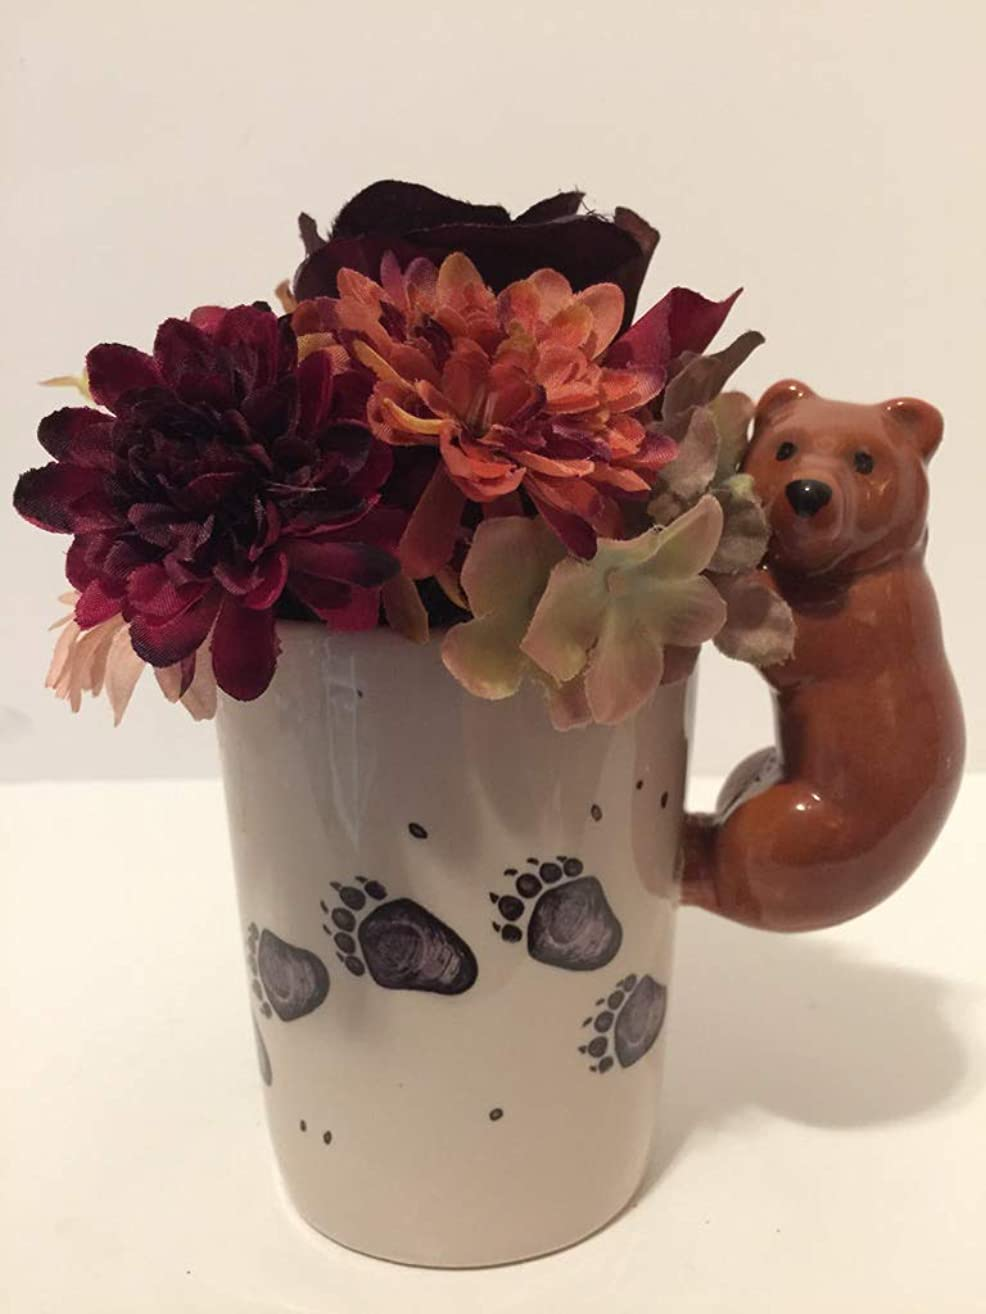 ANIMAL FUN - CLIMBING BEAR VASE - RED, BURGUNDY, PINK, CREAM, GREEN, PURPLE, BLUE MIXED FLORAL